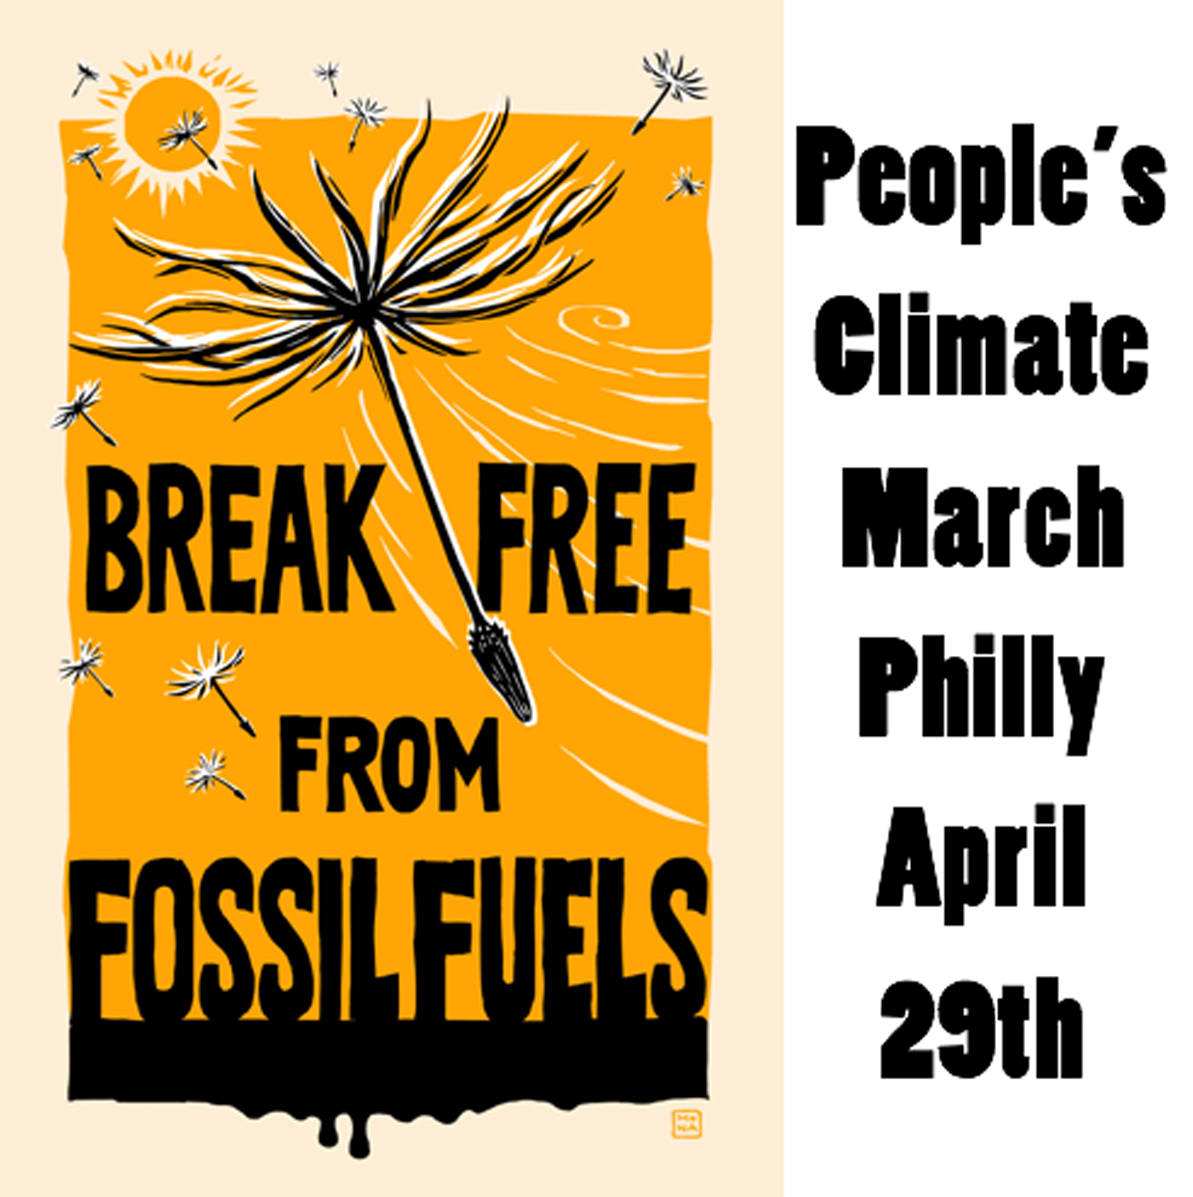 Philly People's Climate March, April 29th